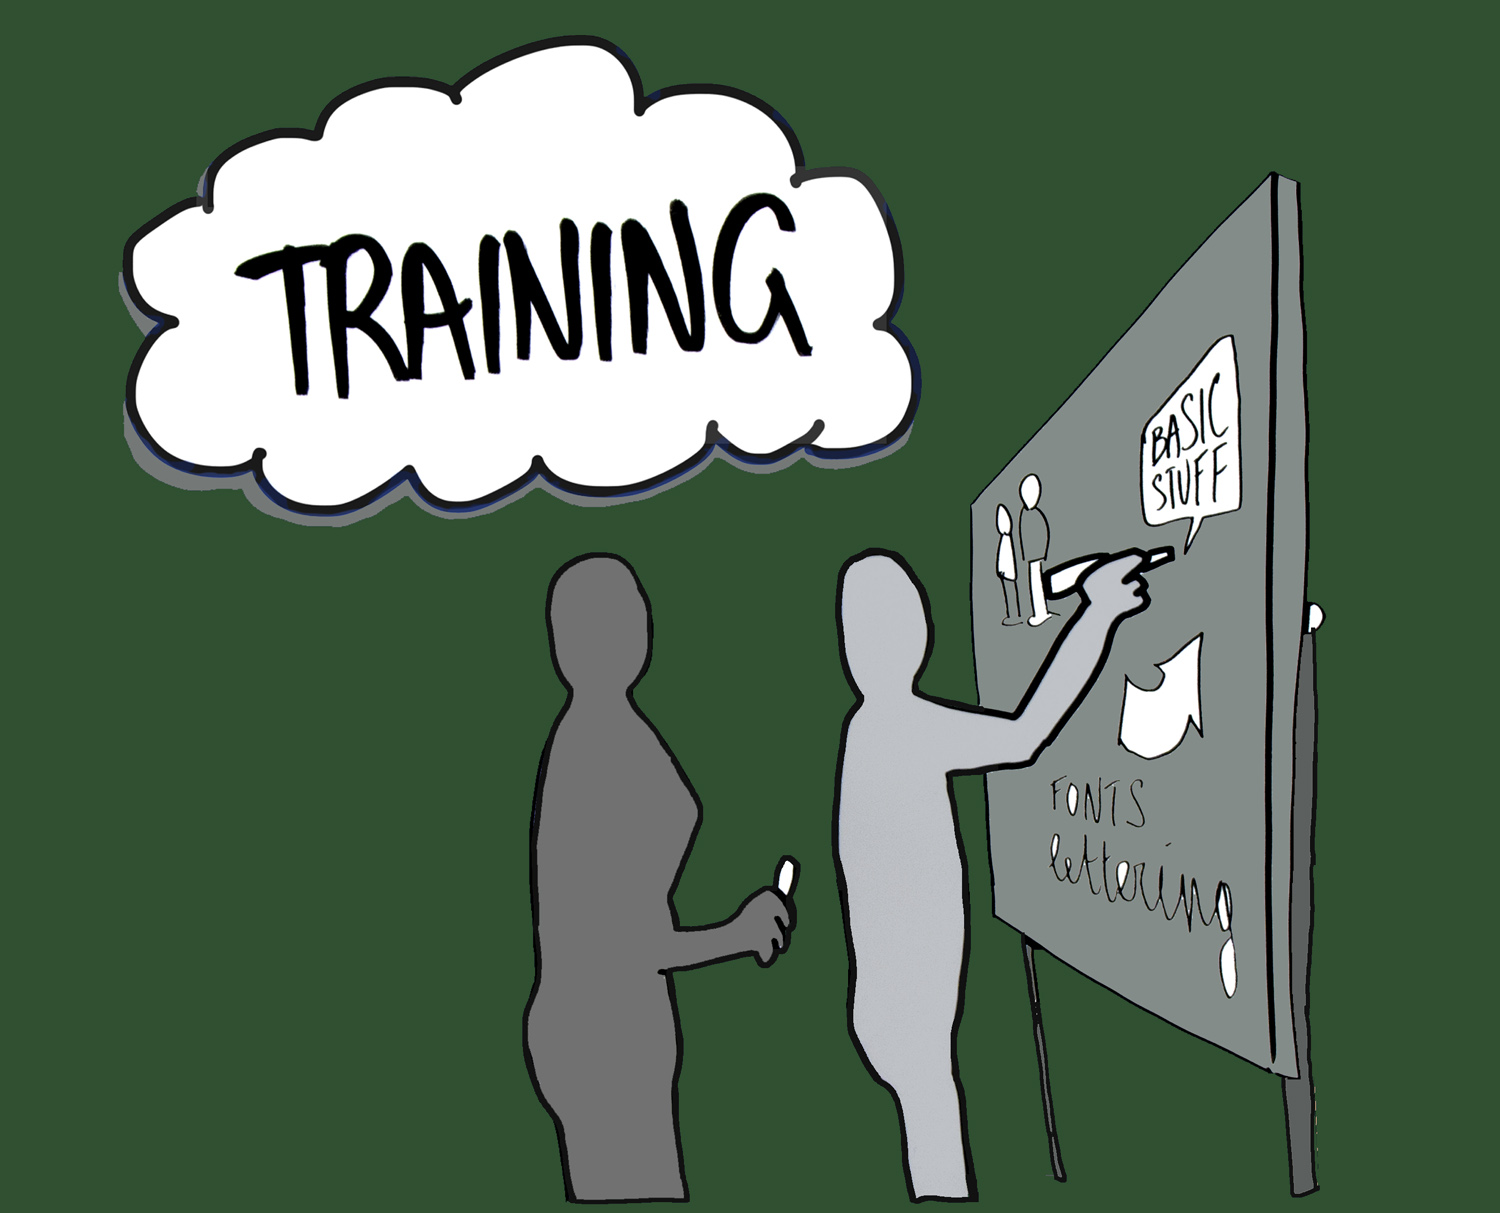 - You want to be more effective and engaging in meetings? Learn the basics of visual facilitation and live drawing to increase participation and achieve better outcomes.Read more >